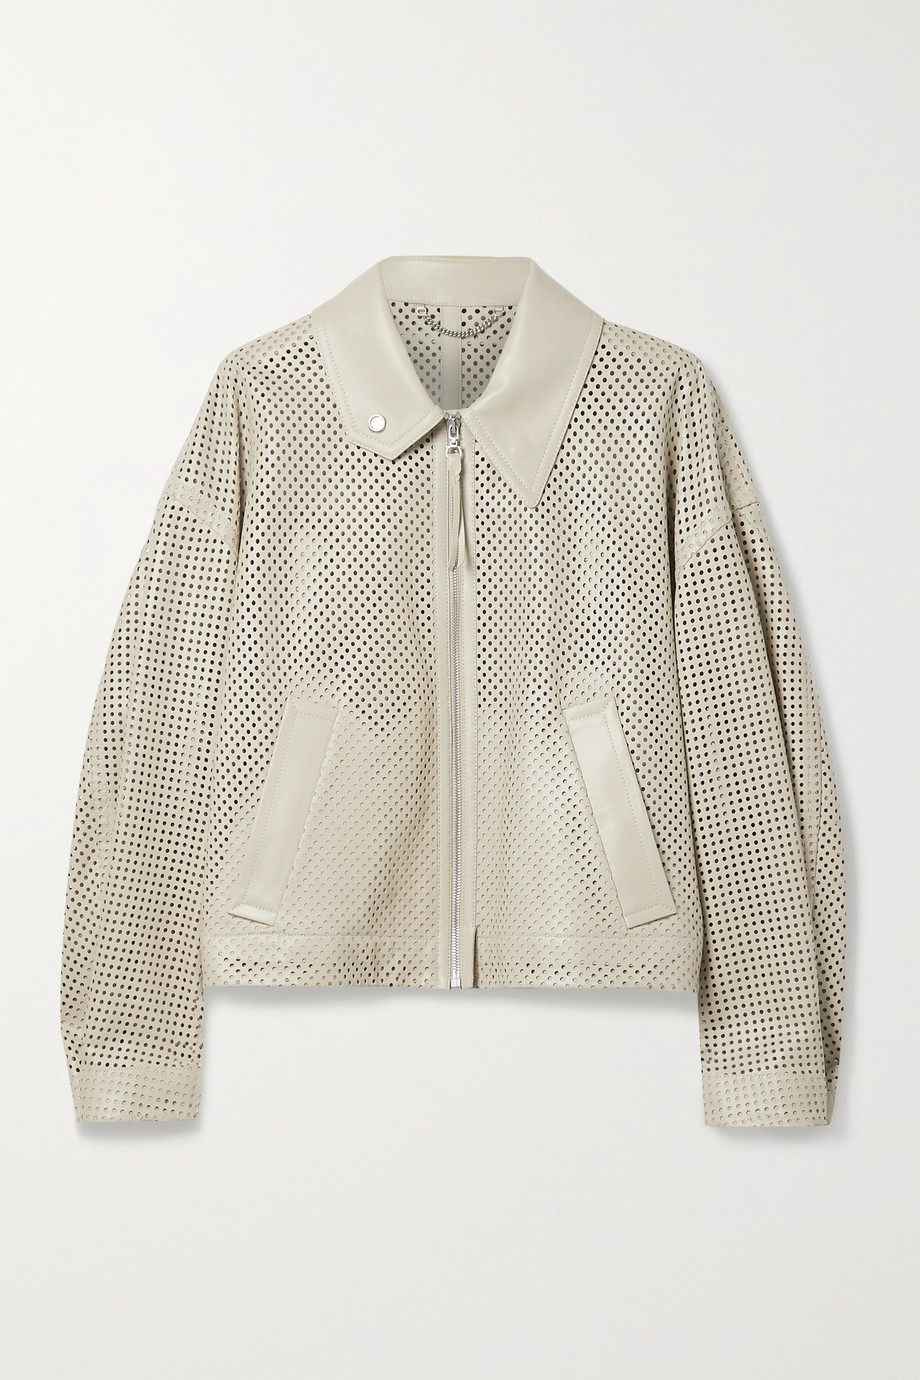 Salvatore Ferragamo Perforated leather bomber jacket